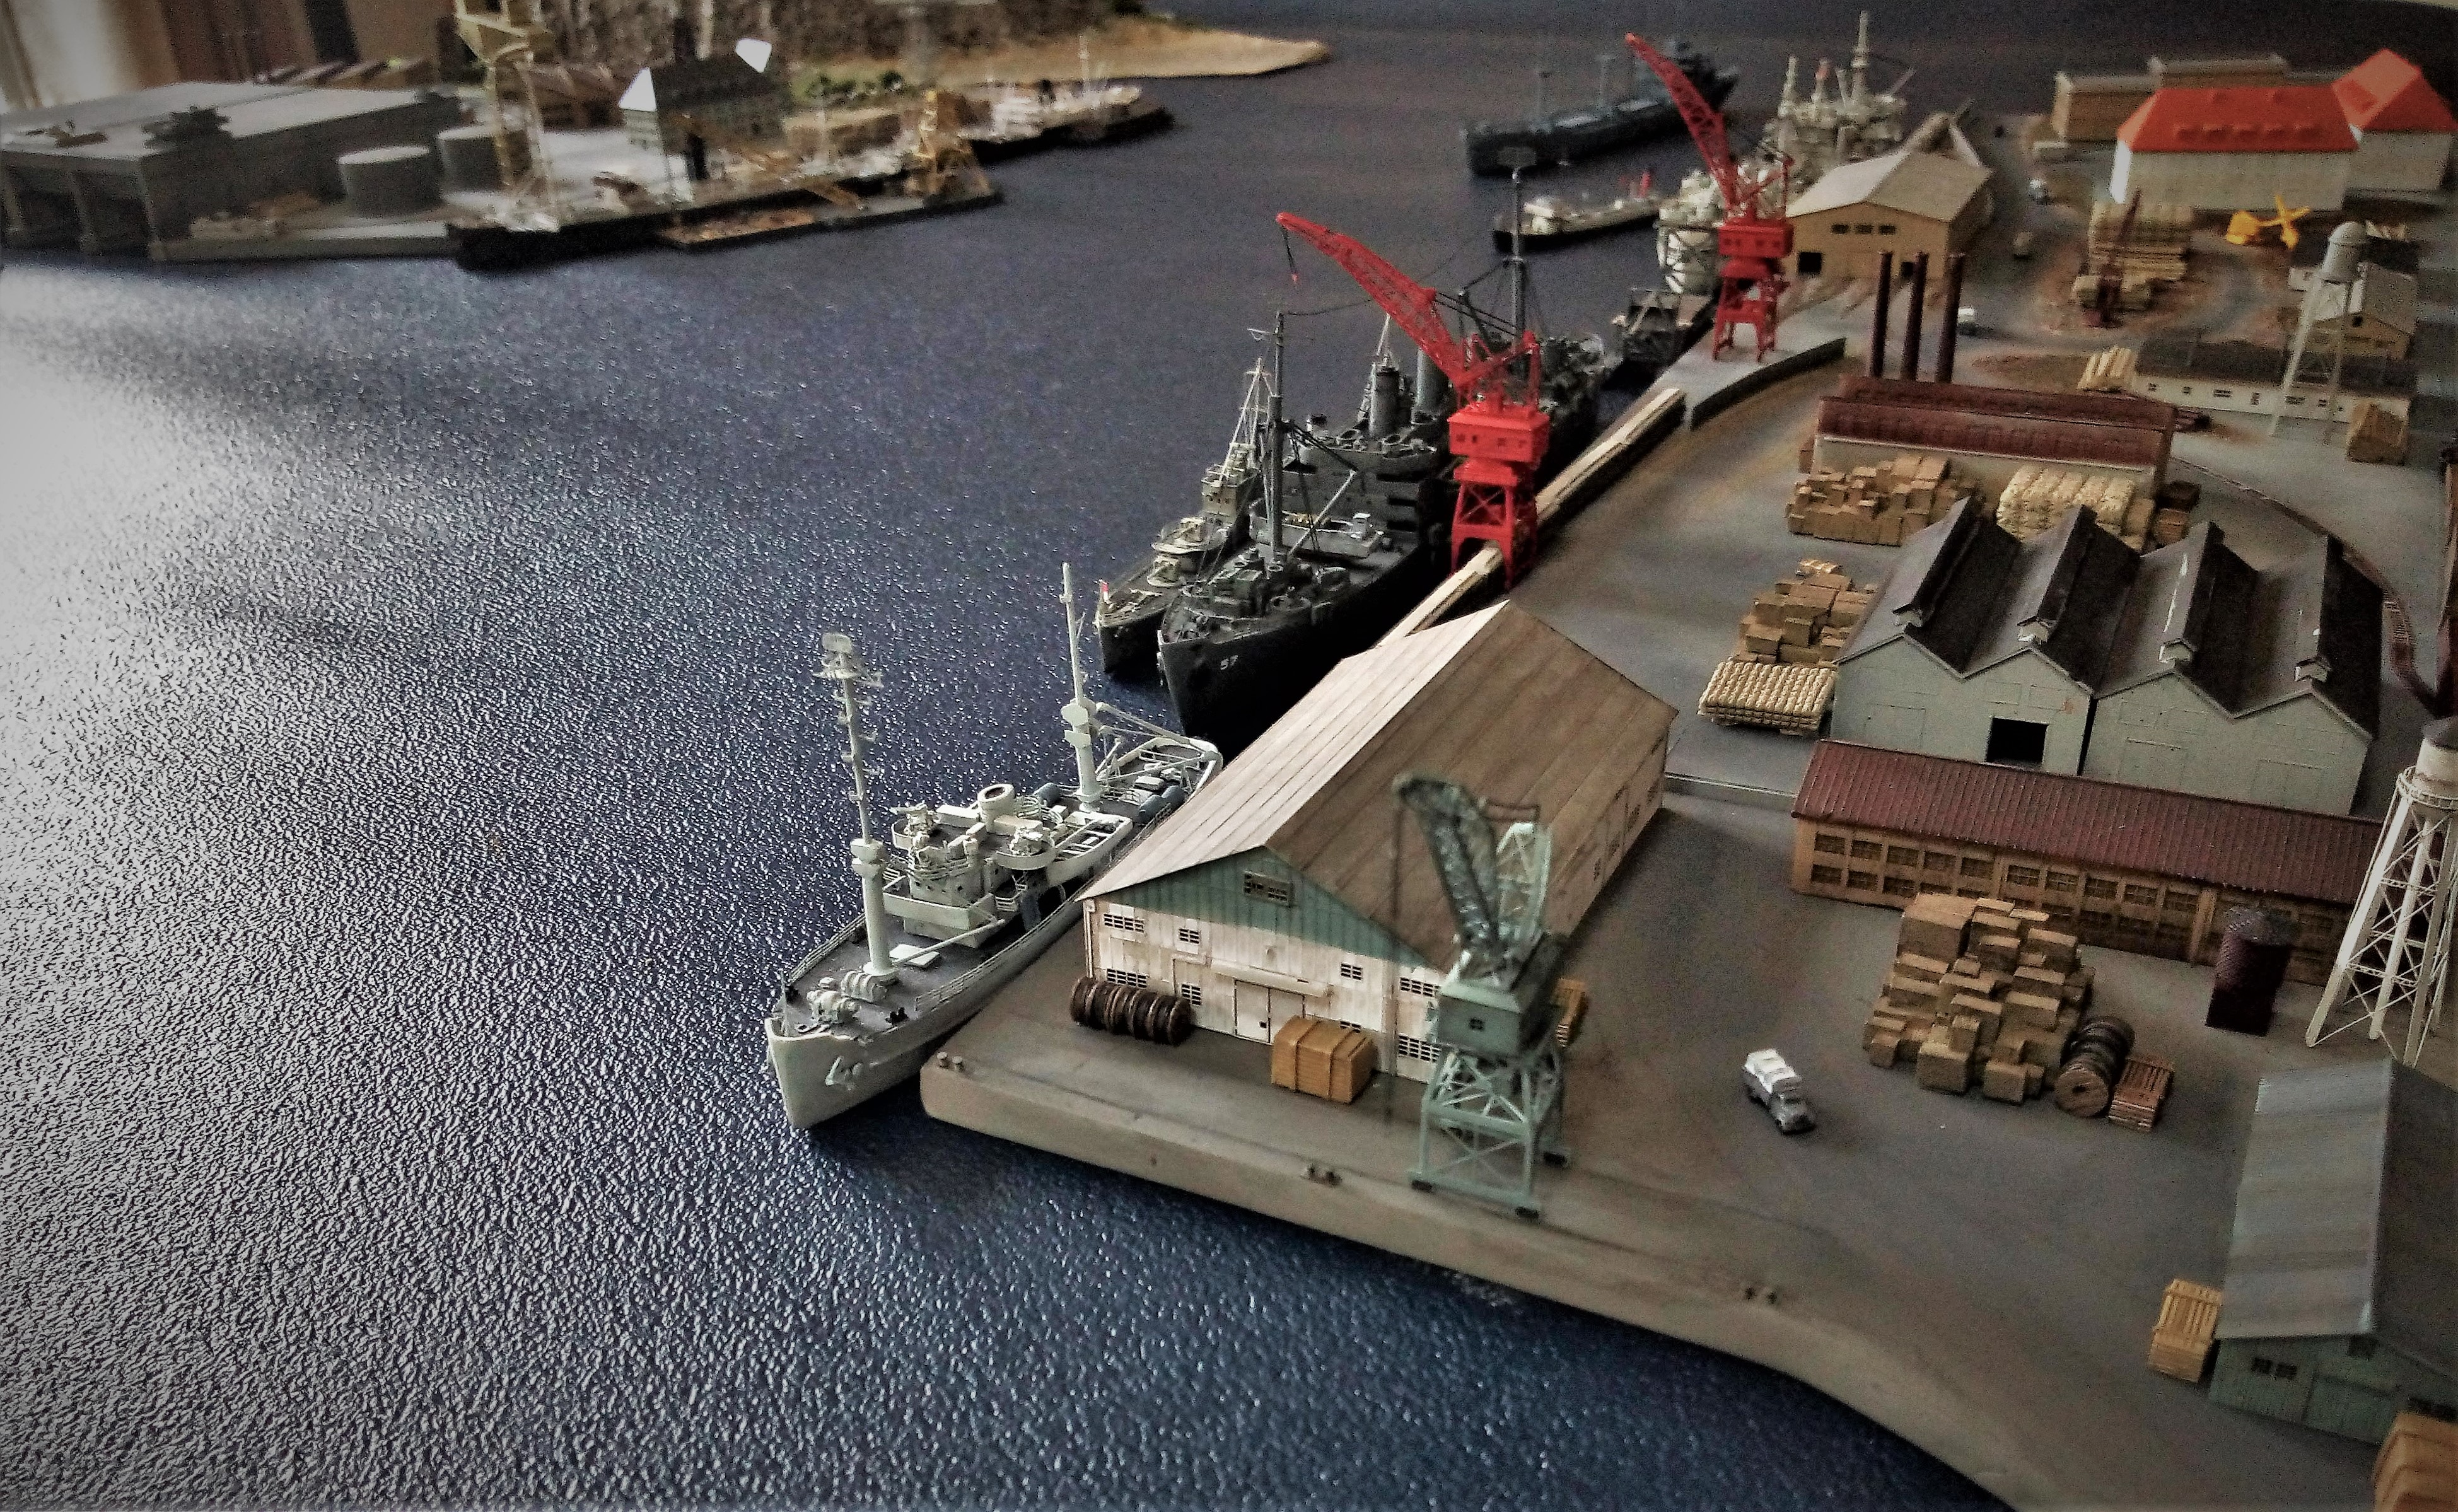 Diorama base navale 1/700 - Page 4 QUSnNJ7H